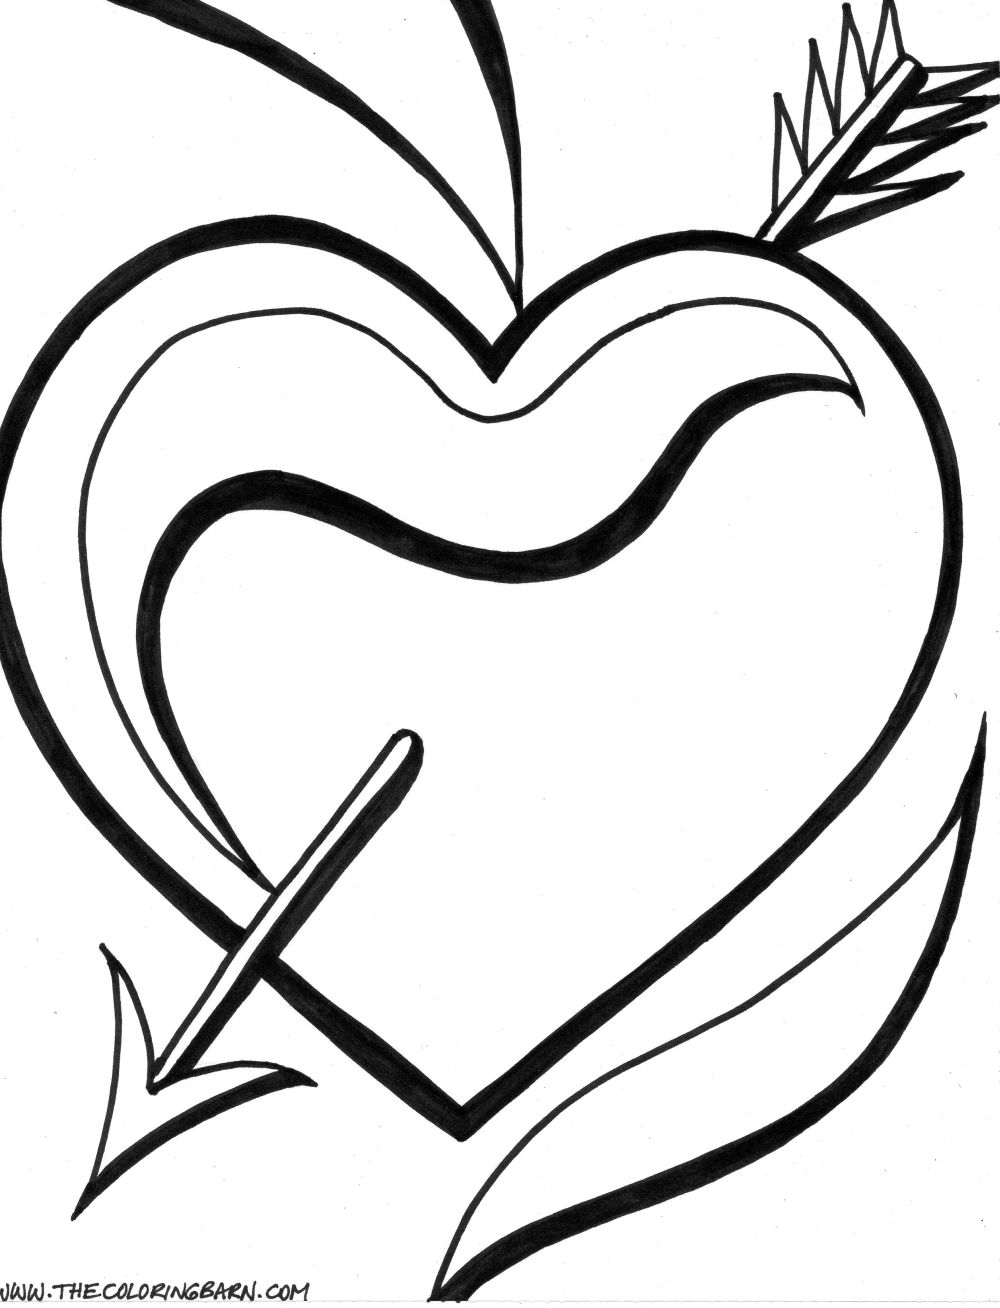 Free Coloring Pages Hearts And Flowers at GetDrawings.com | Free for ...